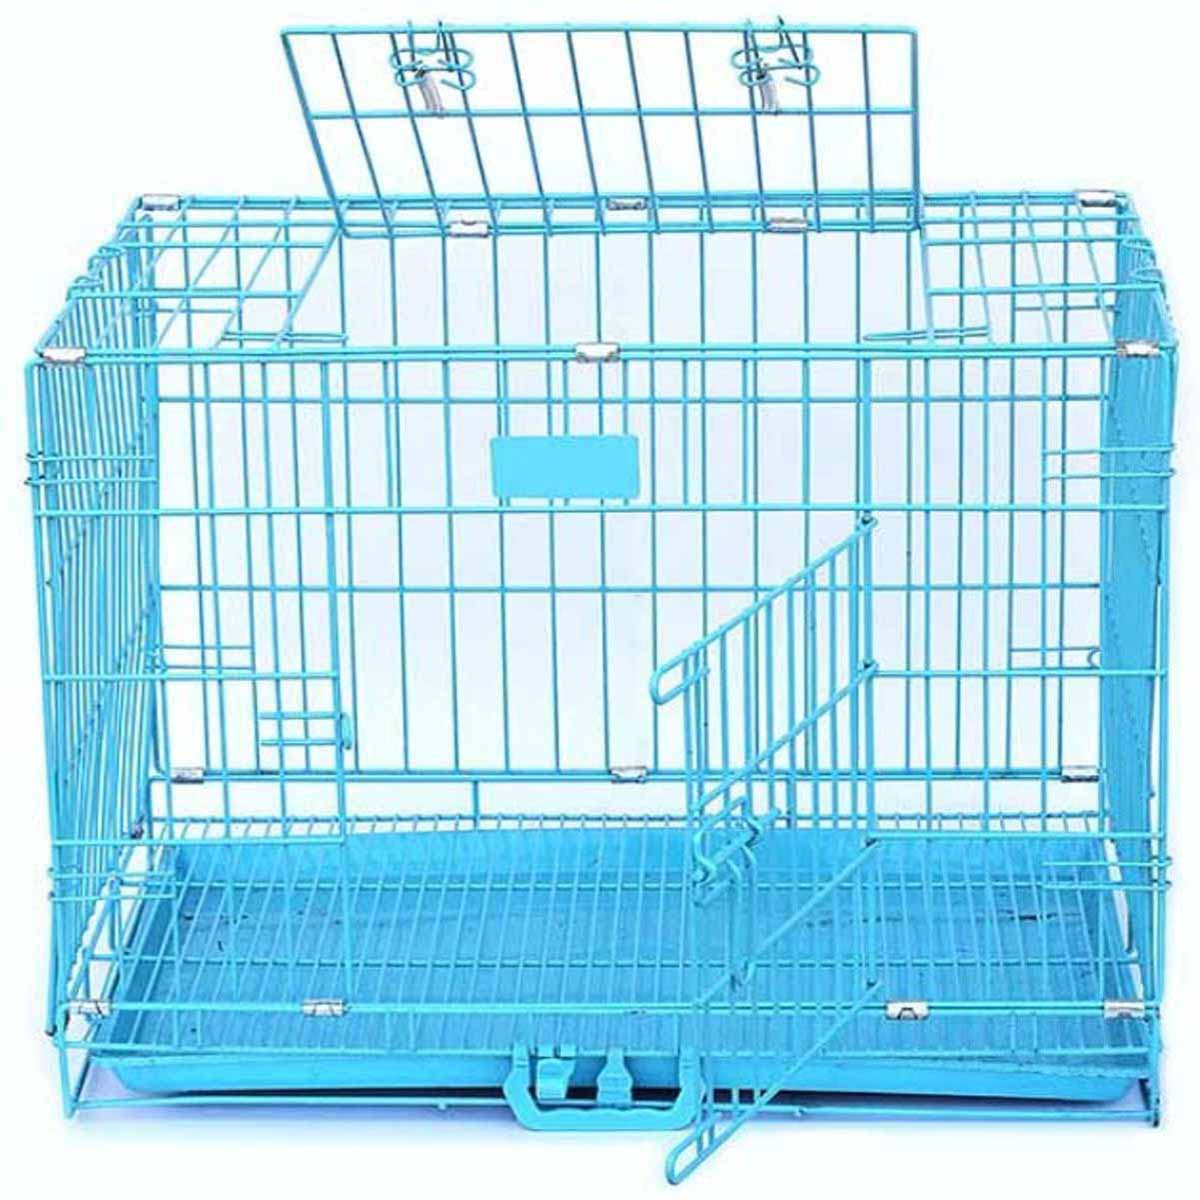 Buy 2 Ft Blue Dog Cage,dog cage,cat cage in low price online at Petindiaonline